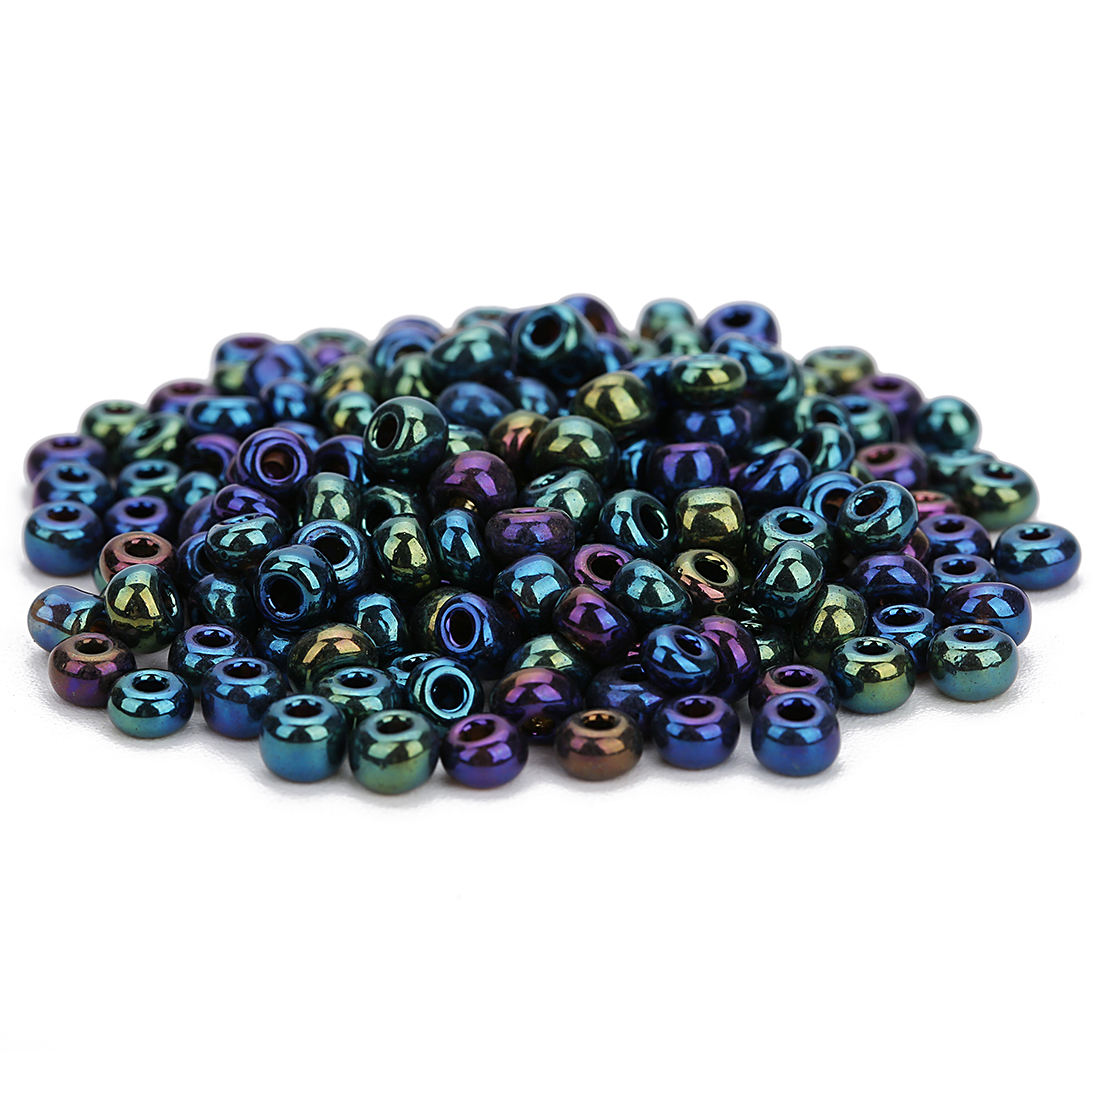 Wholesale 4mm Seed Beads Round Glass Beads For DIY Jewelry Necklace Making